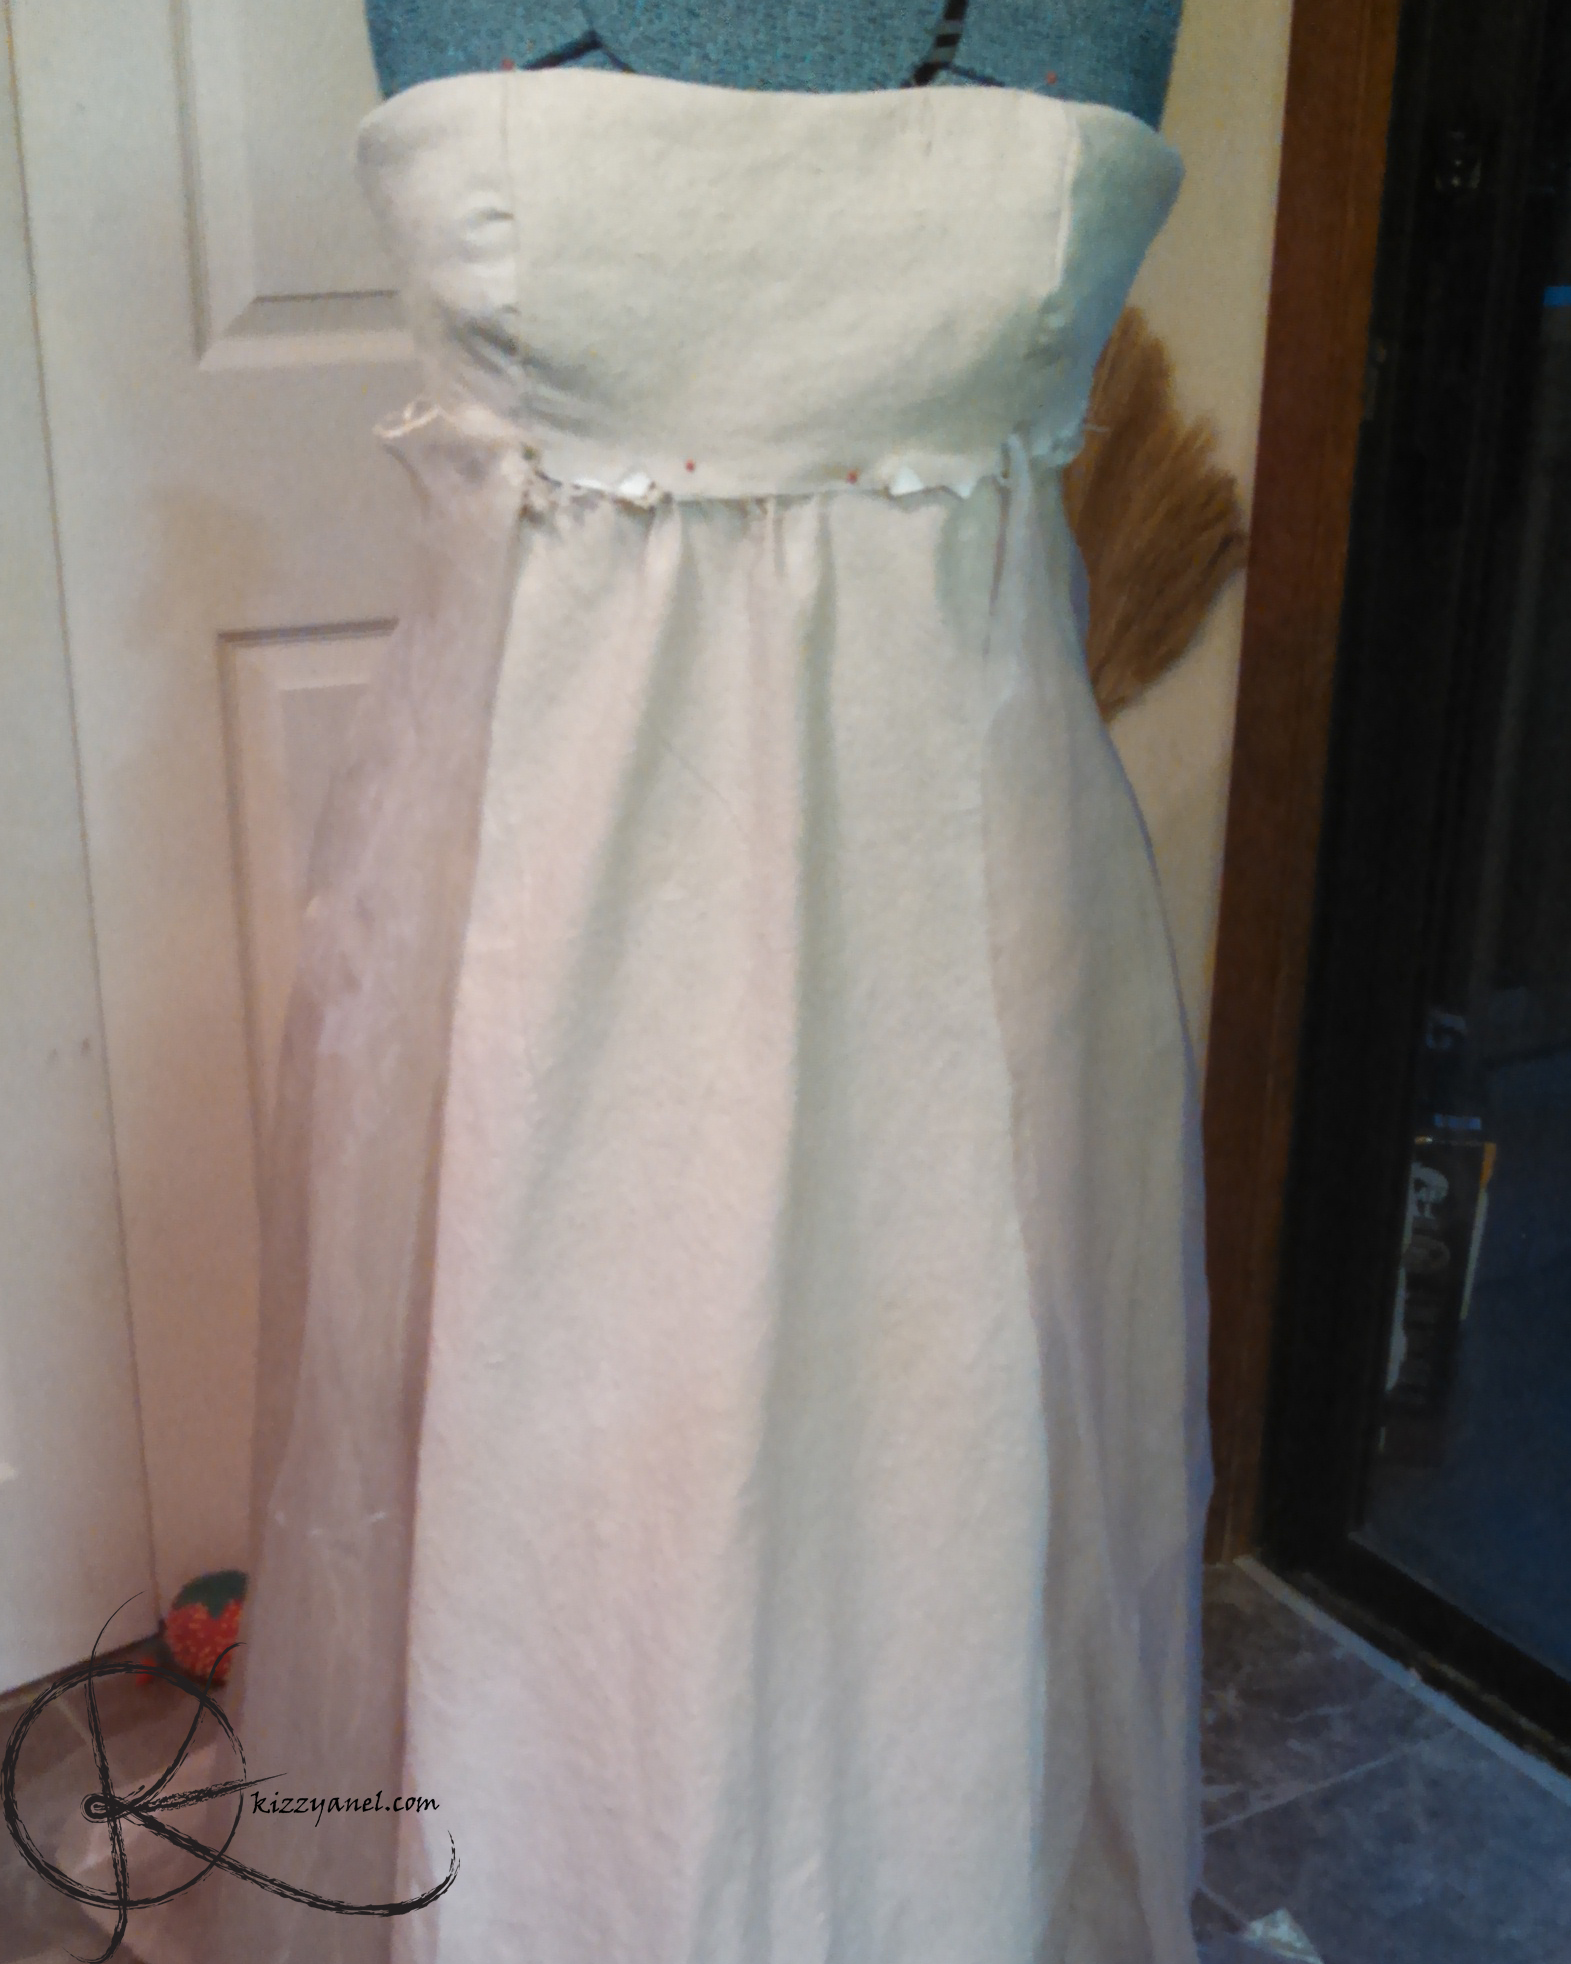 WIP dress with overlay skirt